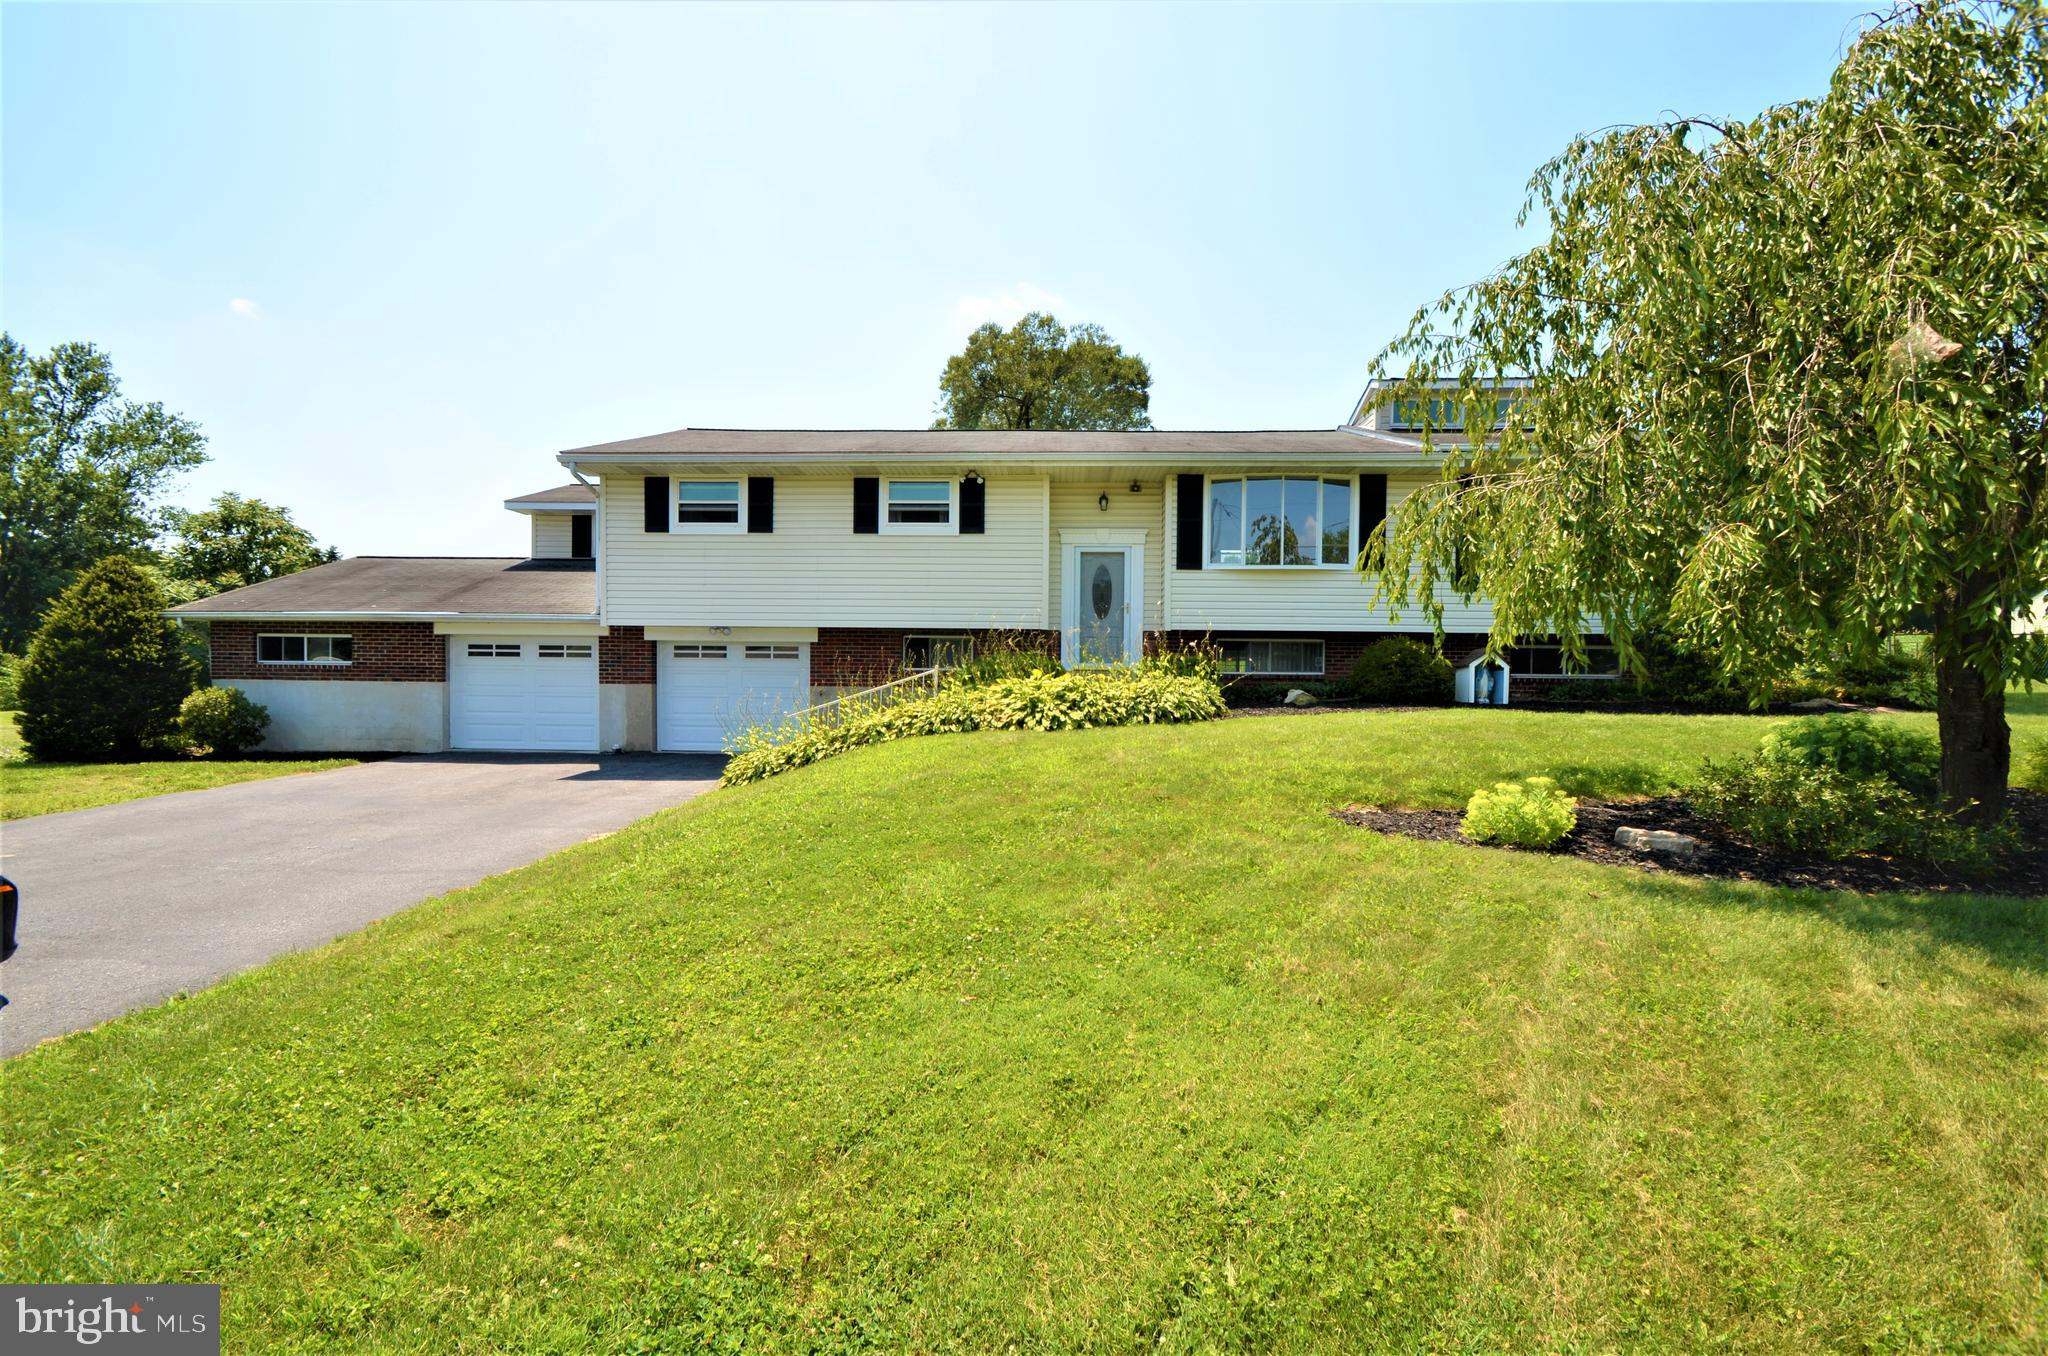 331 LONG LANE ROAD, WALNUTPORT, PA 18088